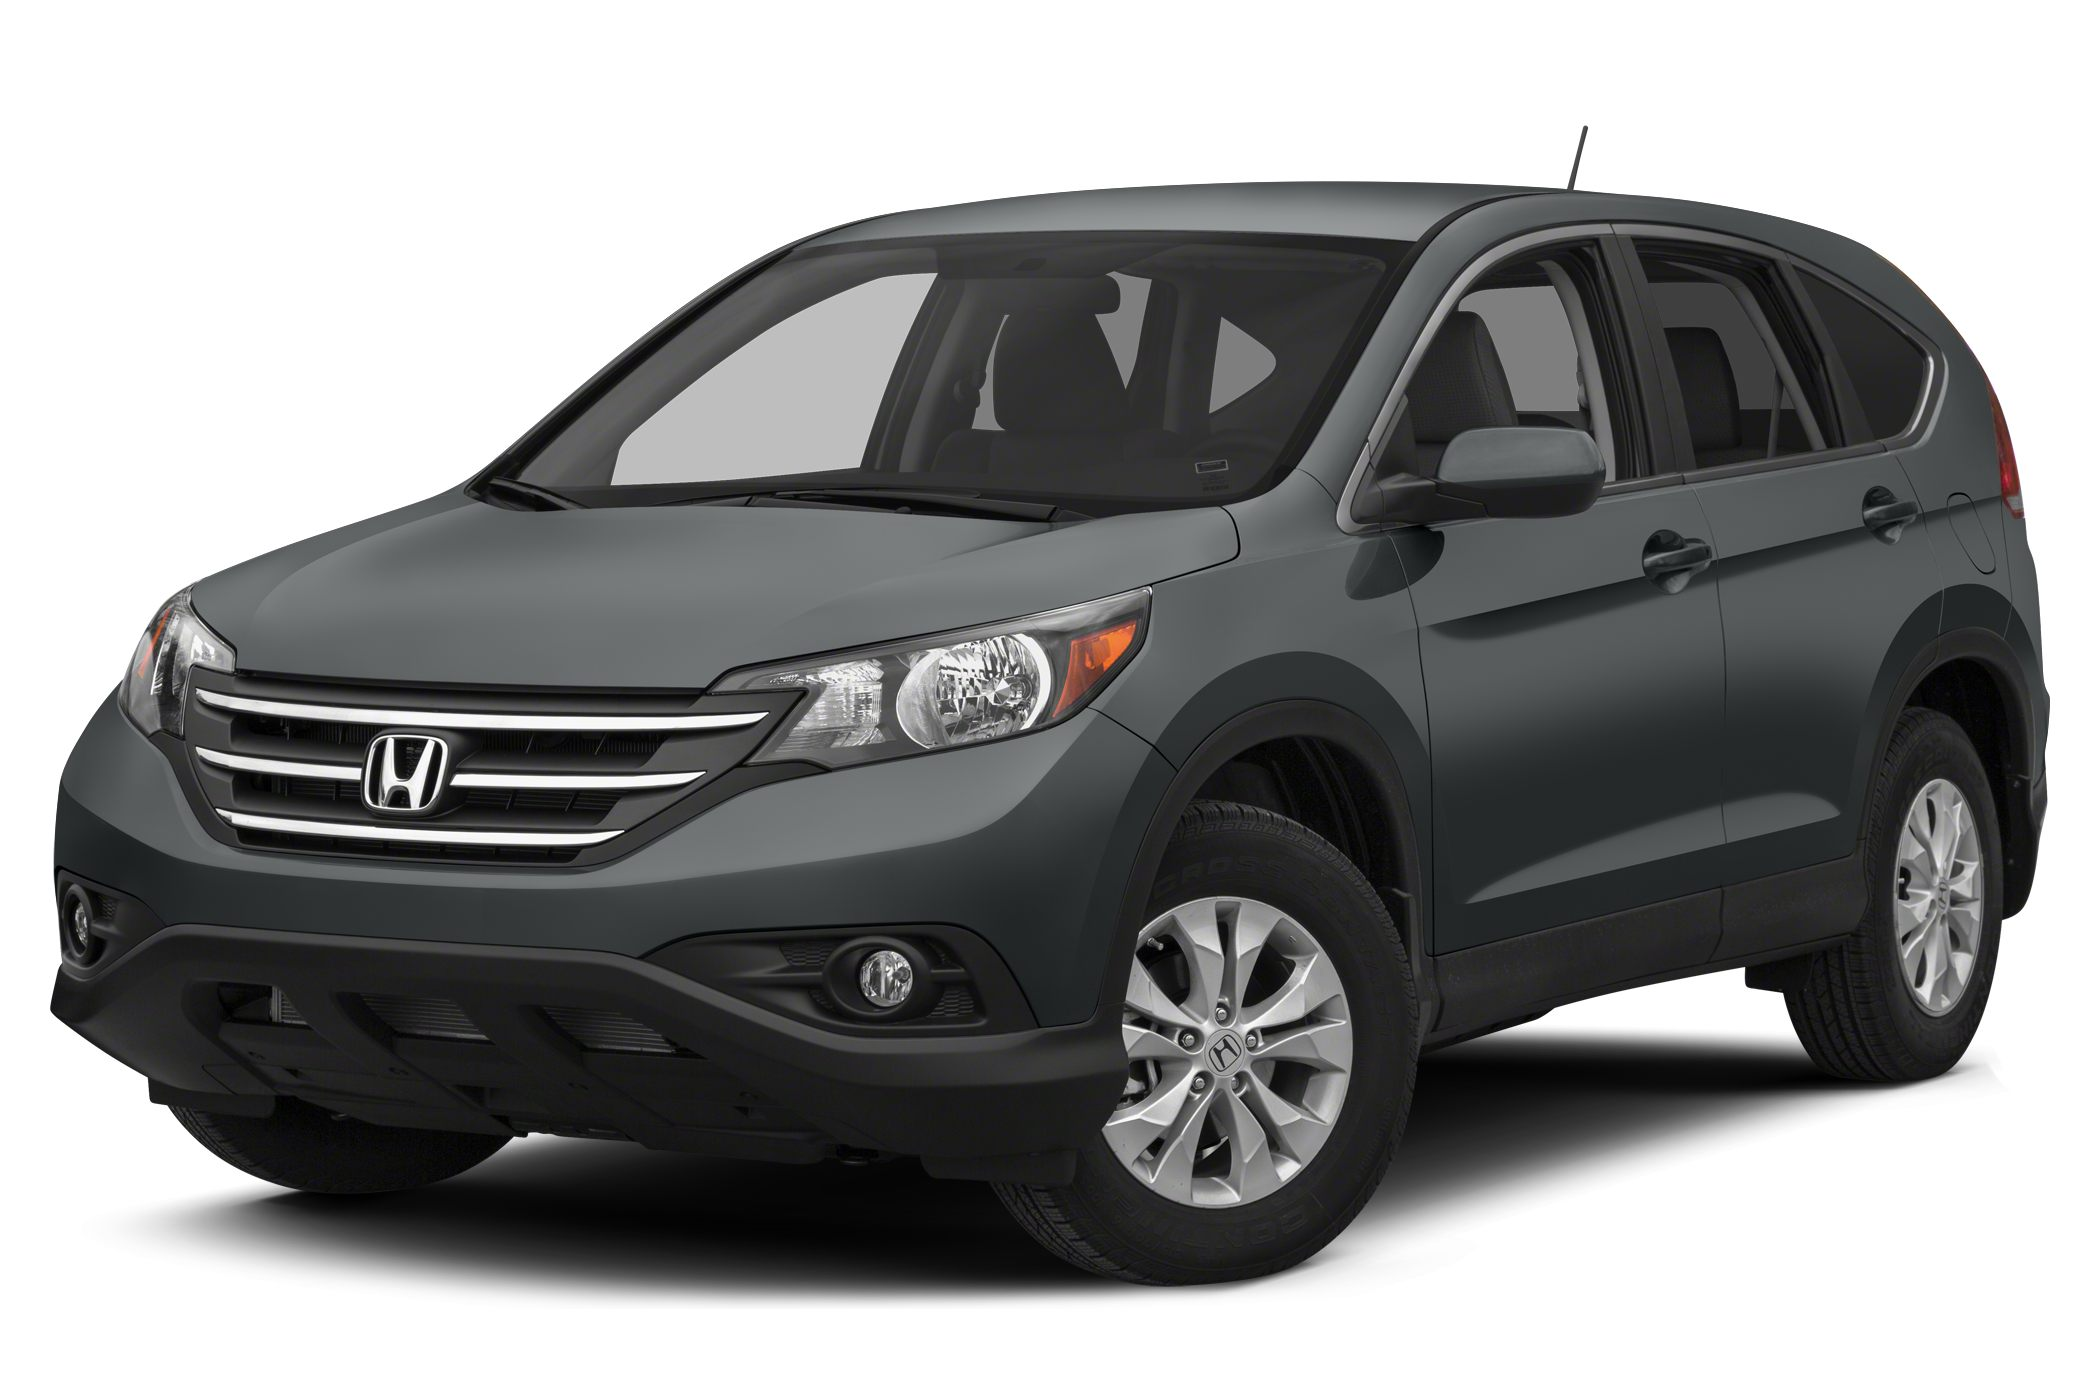 2014 Honda CR-V EX SUV for sale in Hatfield for $26,000 with 1,821 miles.